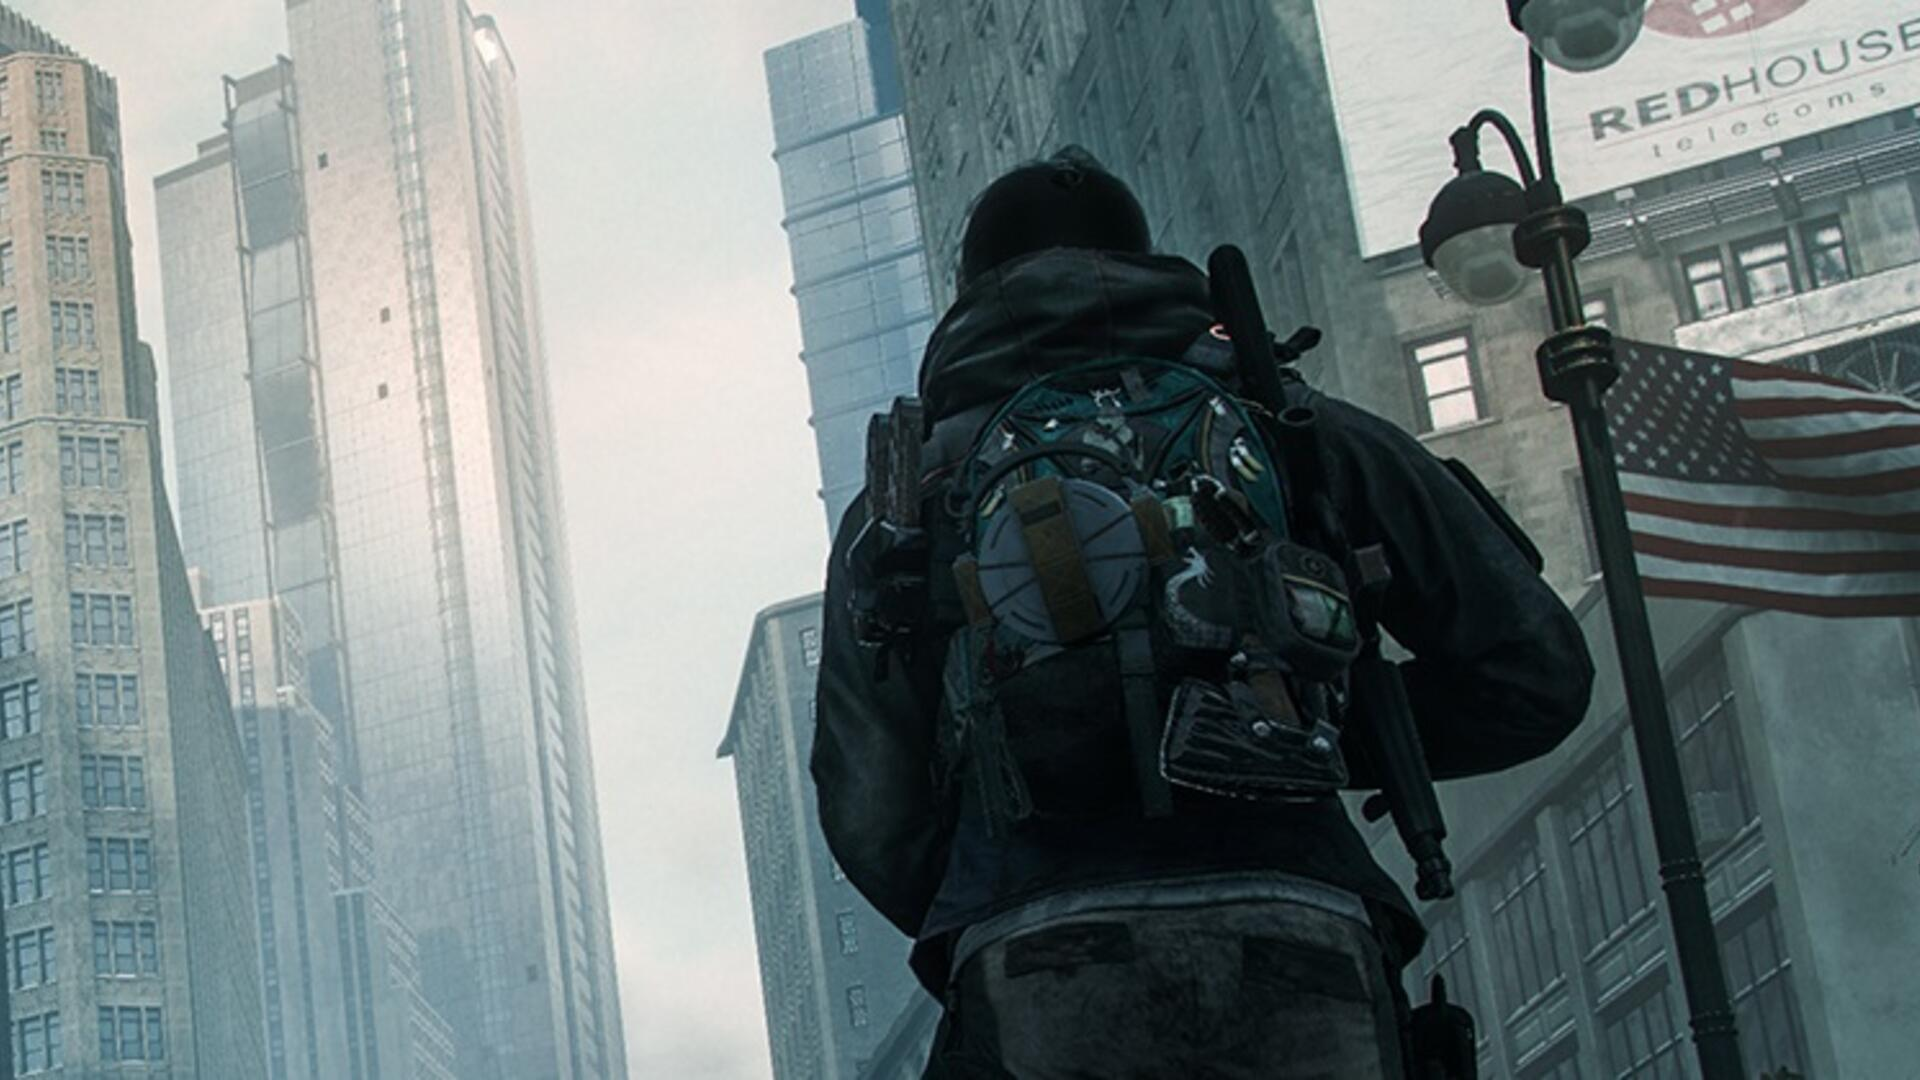 The Division's 1.4 Patch Hits on October 25th